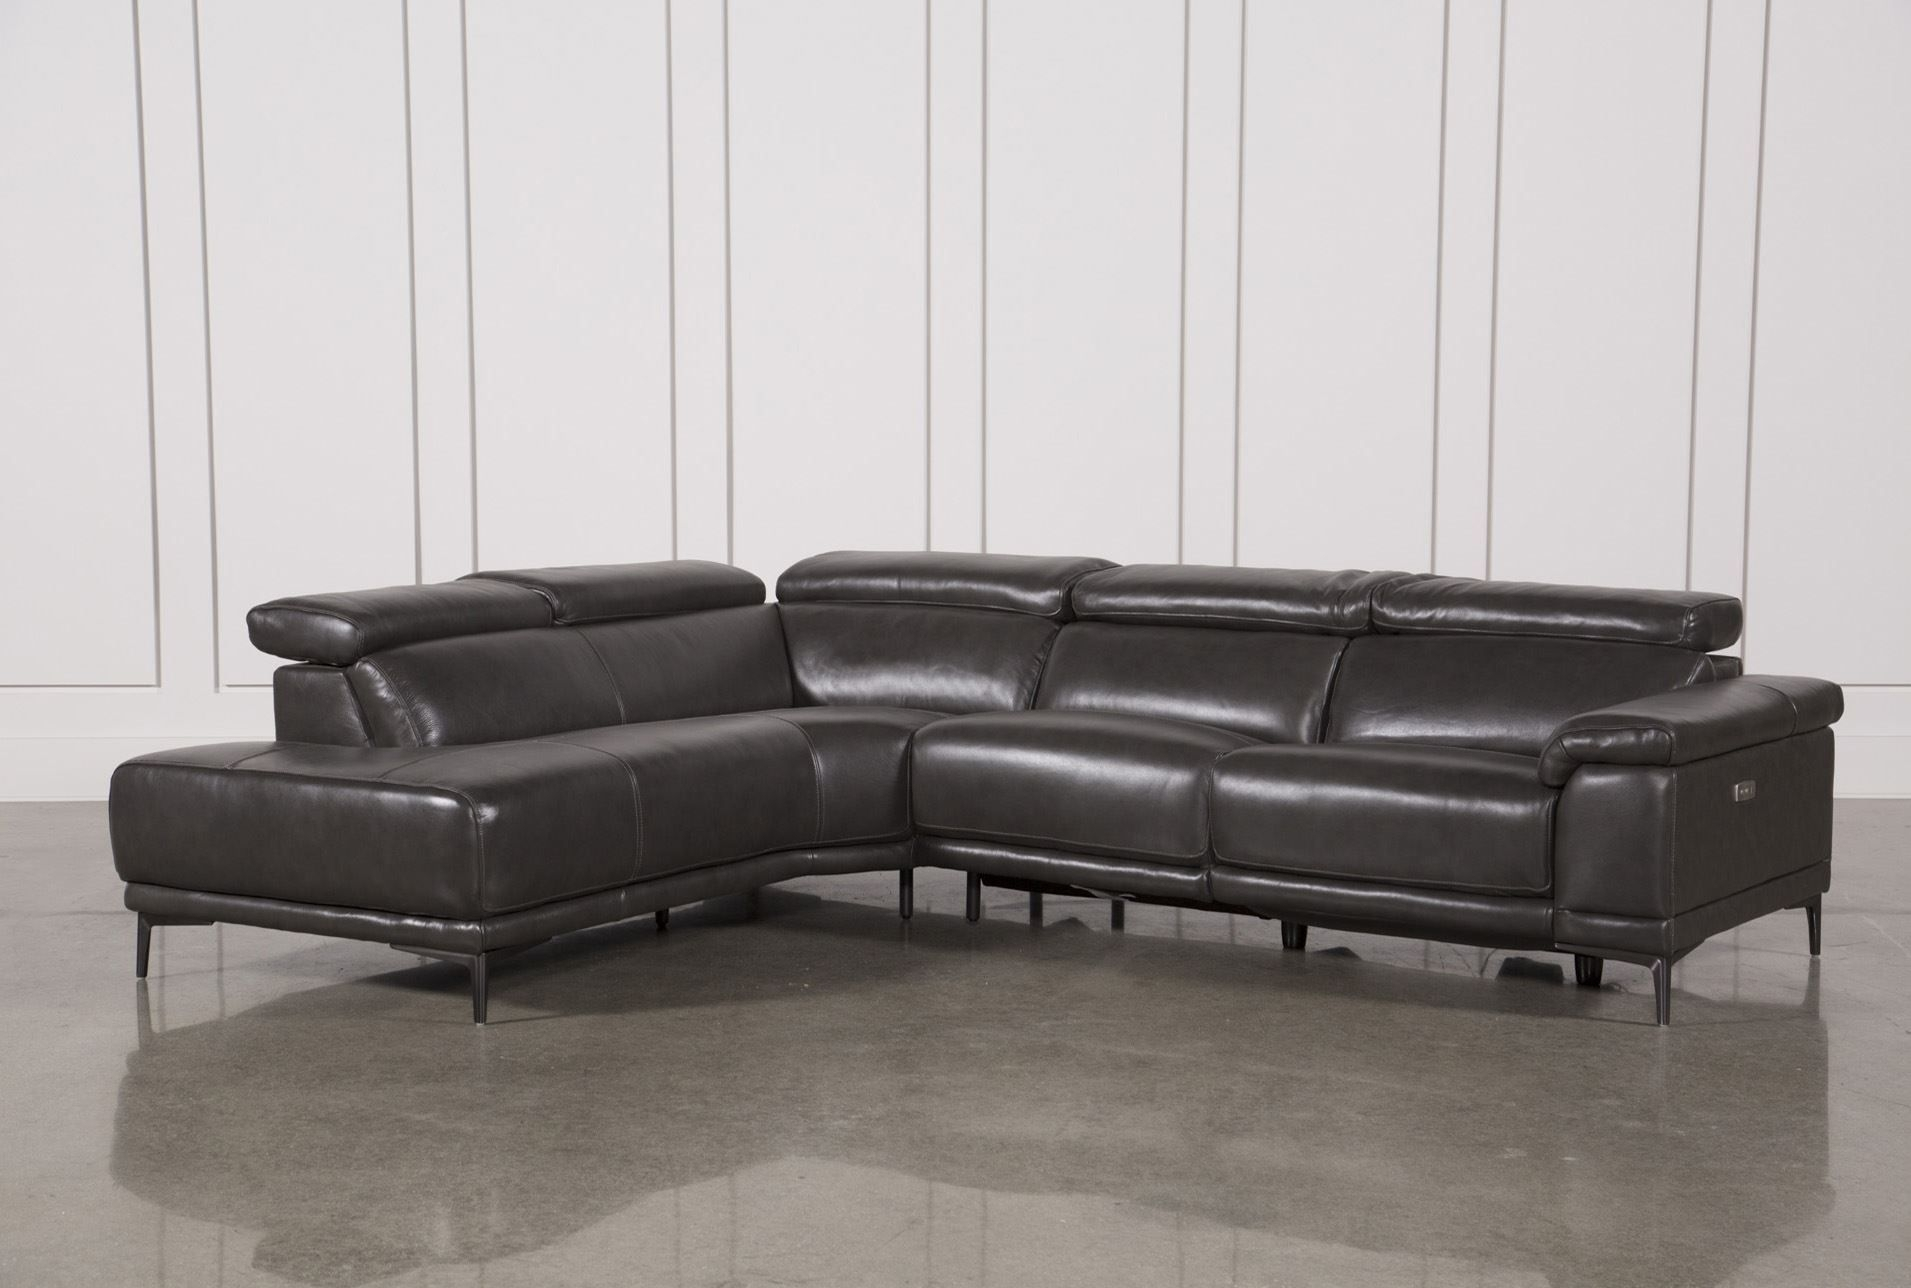 Tatum Dark Grey 2 Piece Sectional W/laf Chaise | Living Room Throughout Cosmos Grey 2 Piece Sectionals With Laf Chaise (View 22 of 25)